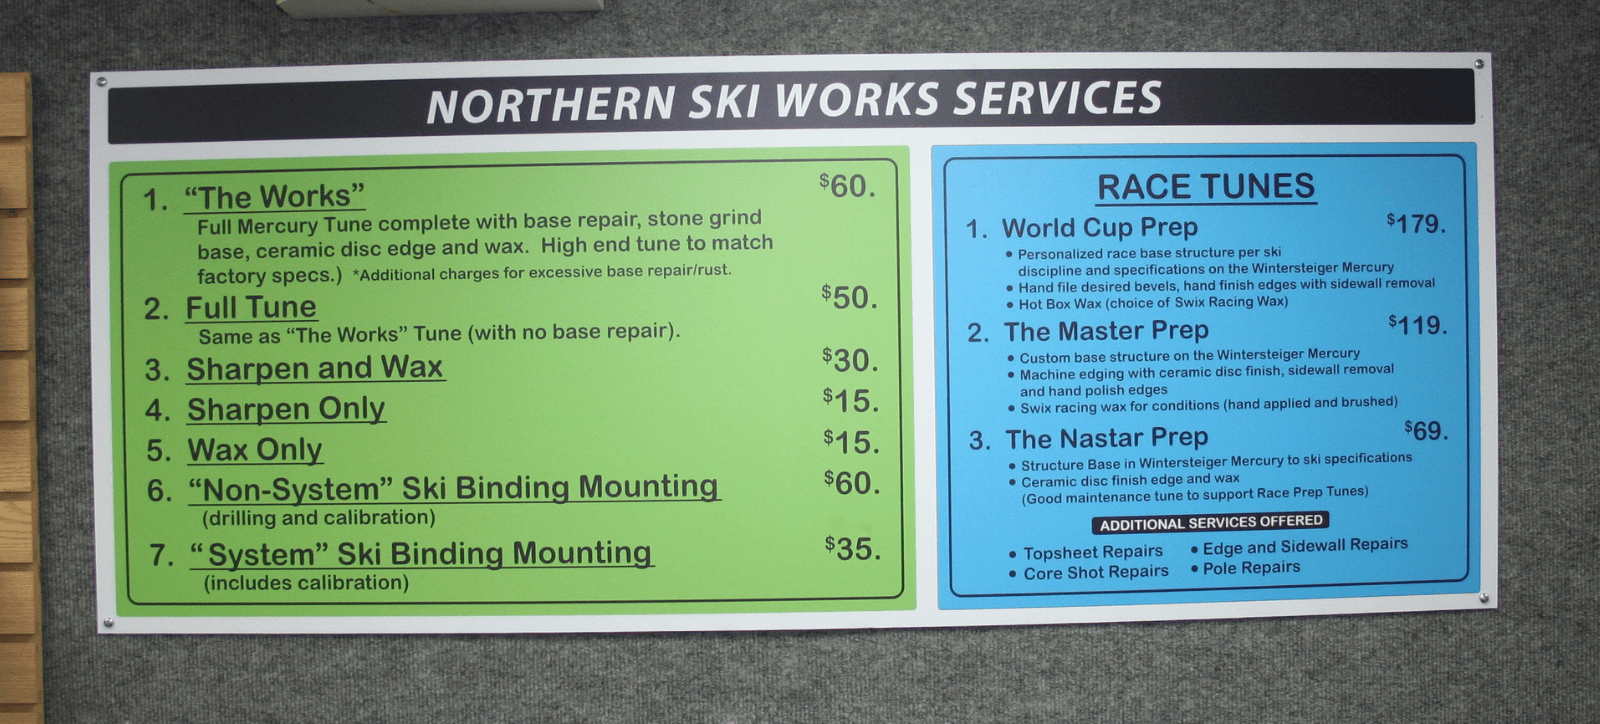 Northern Ski Works Tuning Services